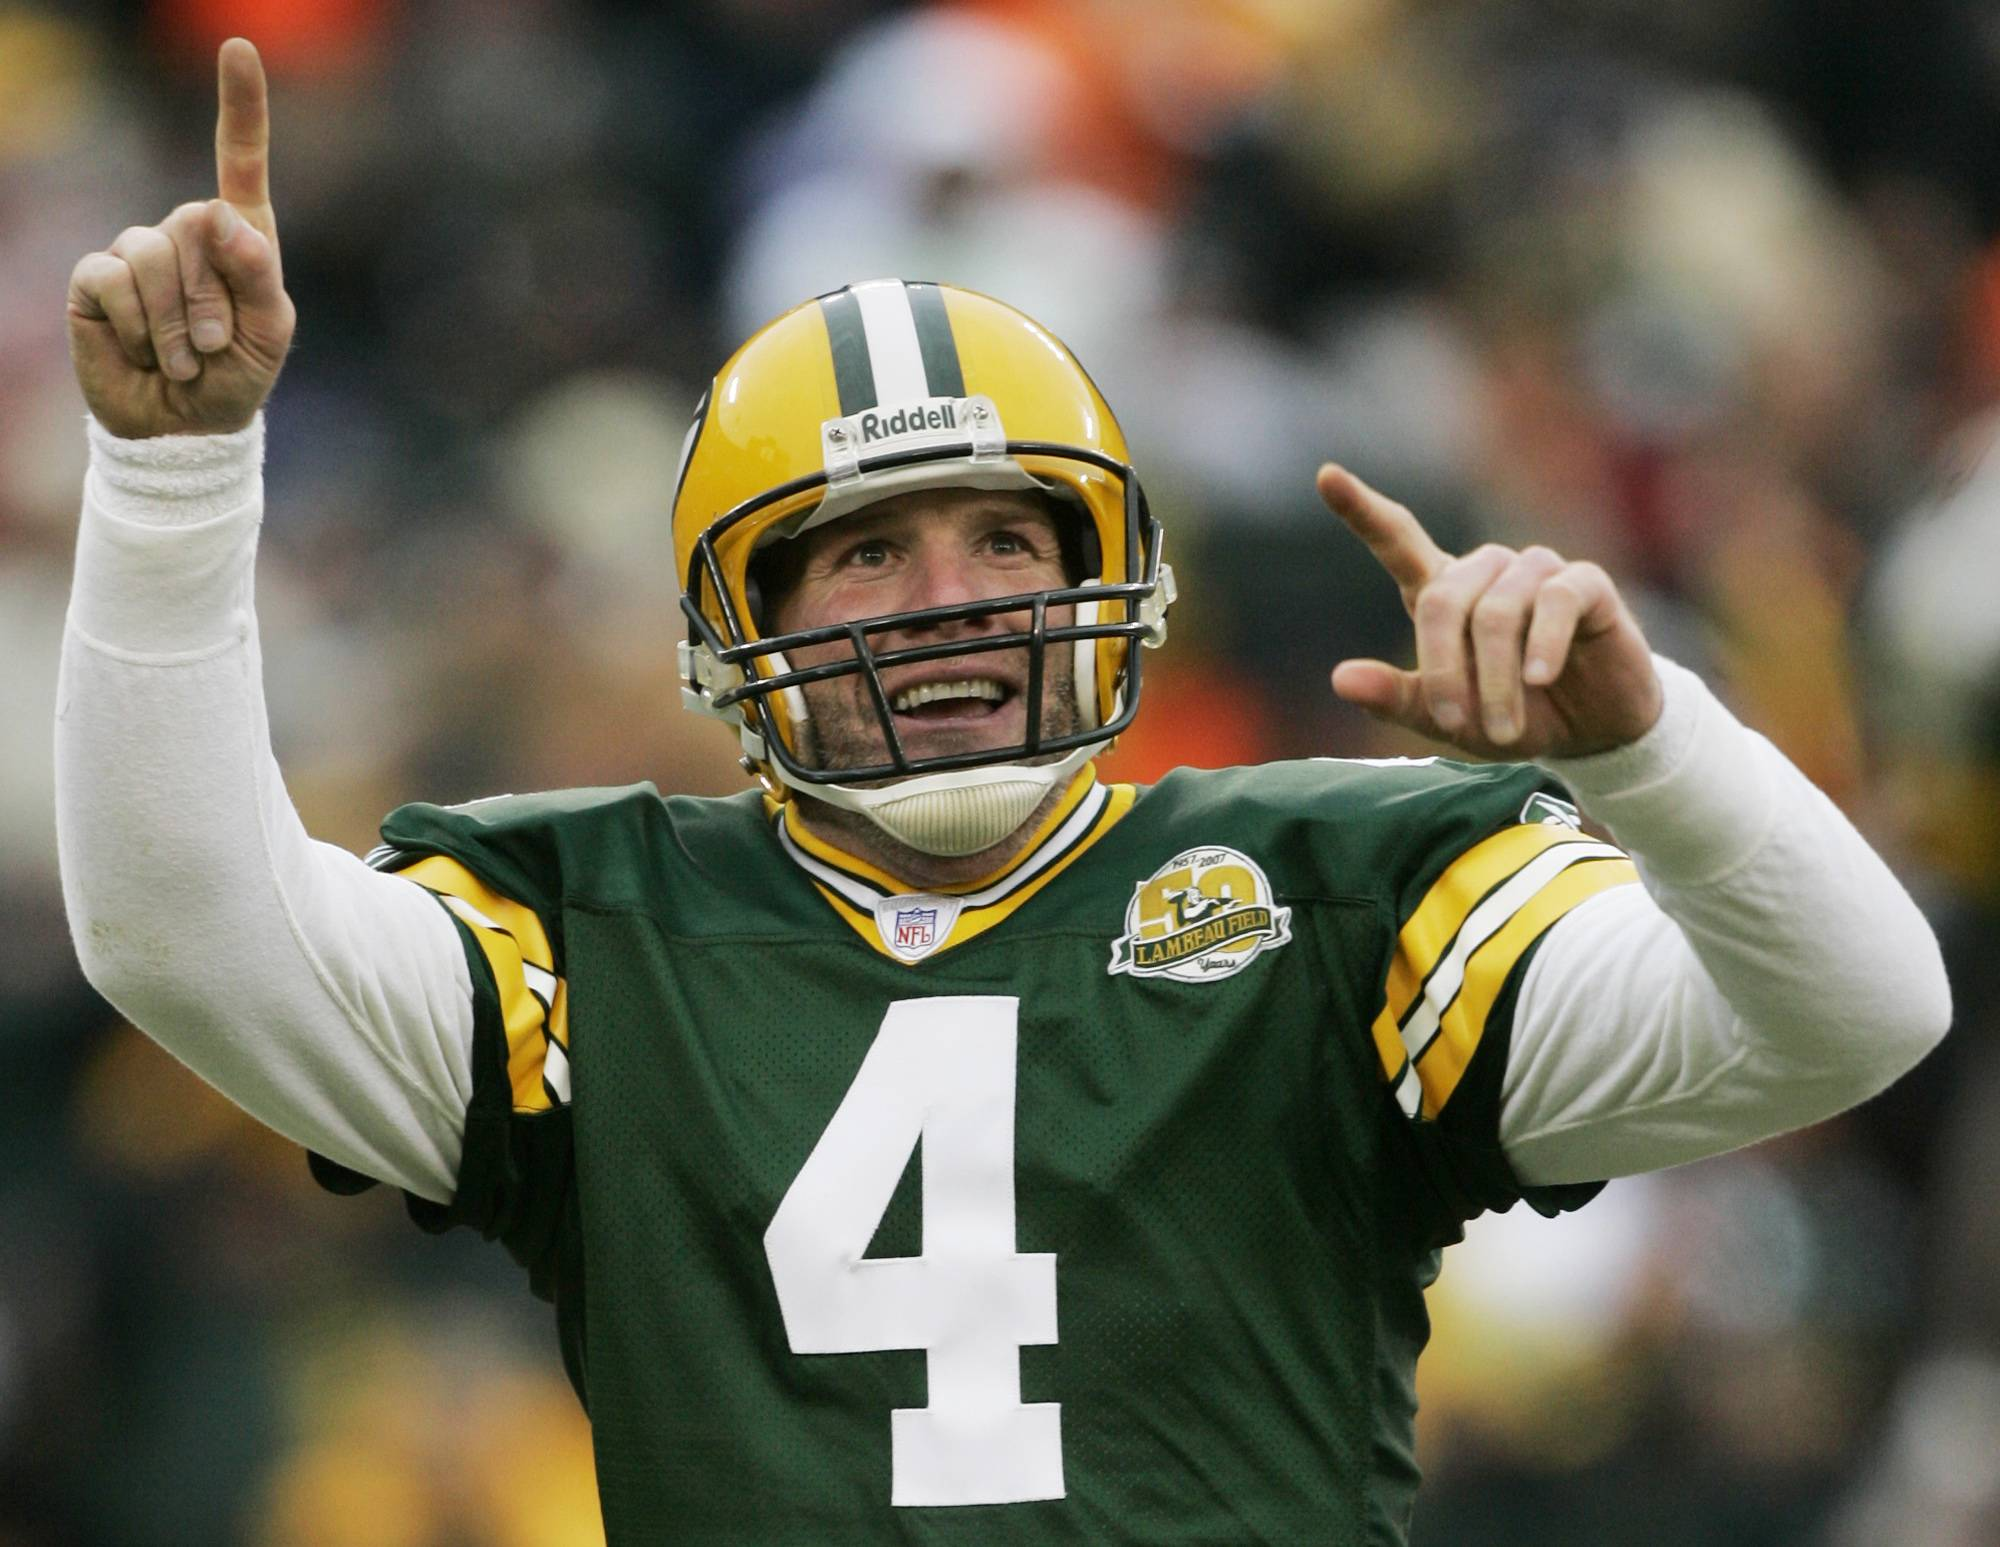 Former Packers quarterback Brett Favre wrote on his official website that it will be an honor to have his name placed among others such Bart Starr, Curly Lambeau, Ray Nitschke and Vince Lombardi, to name a few.